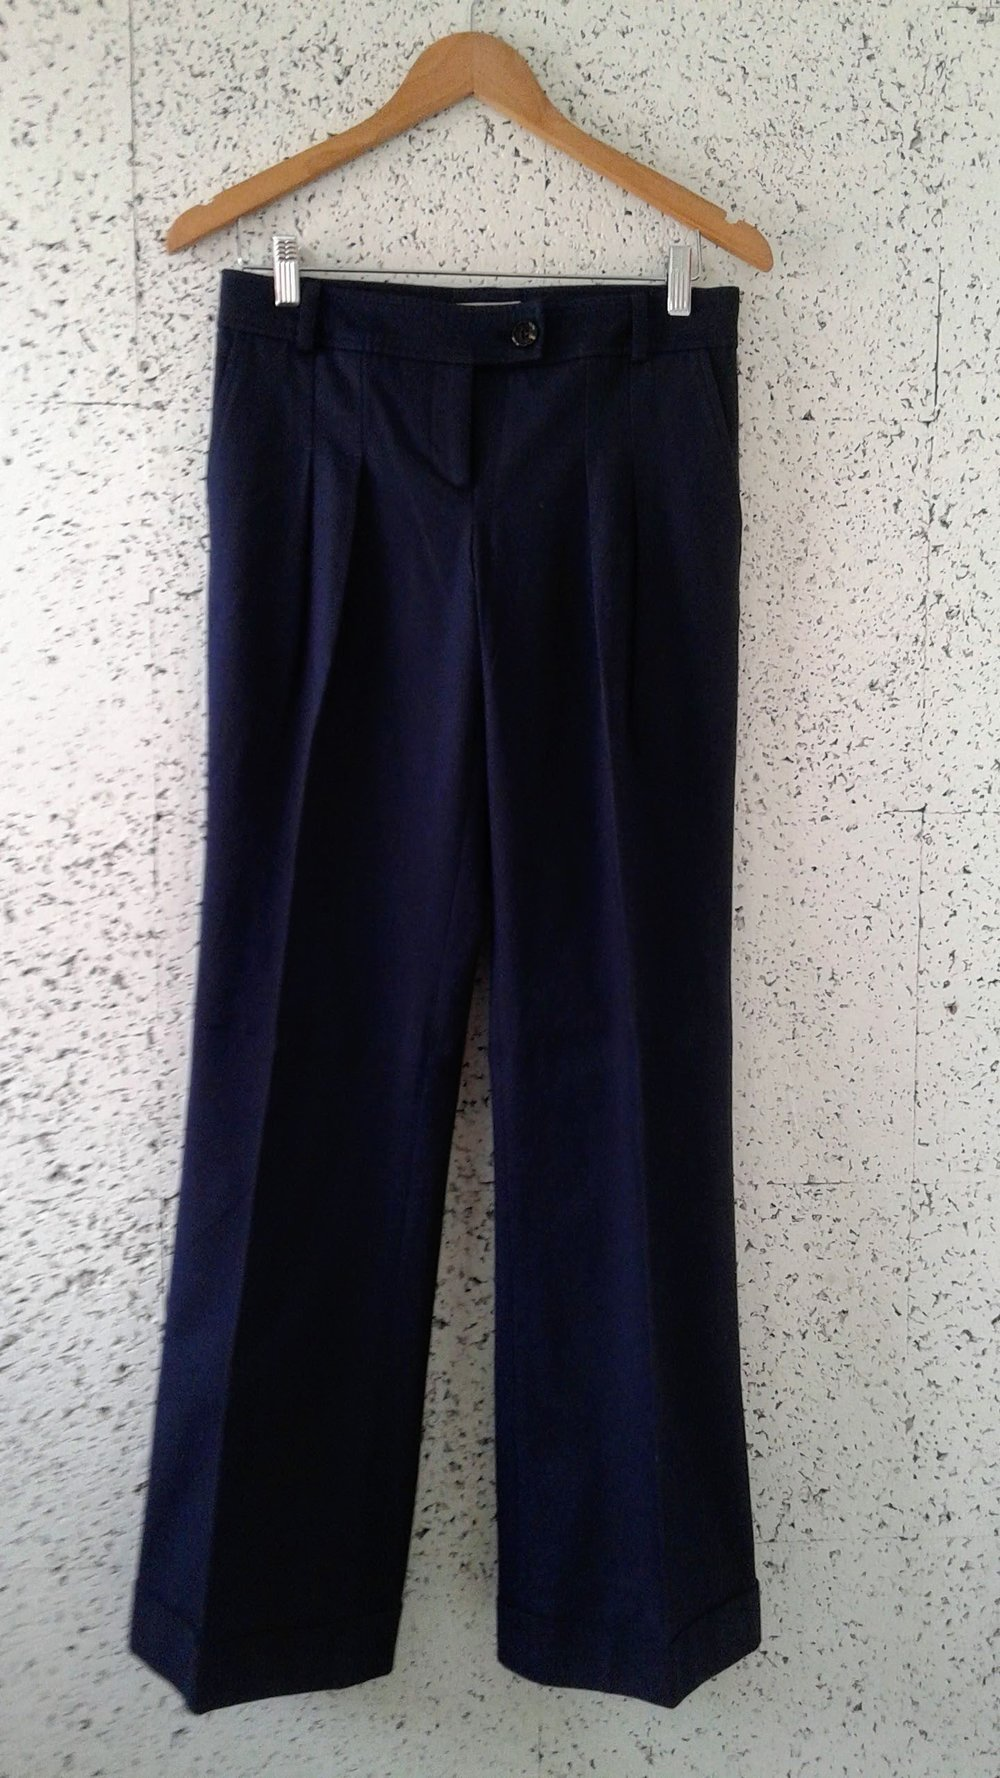 Burberry pants; Size 4, $68